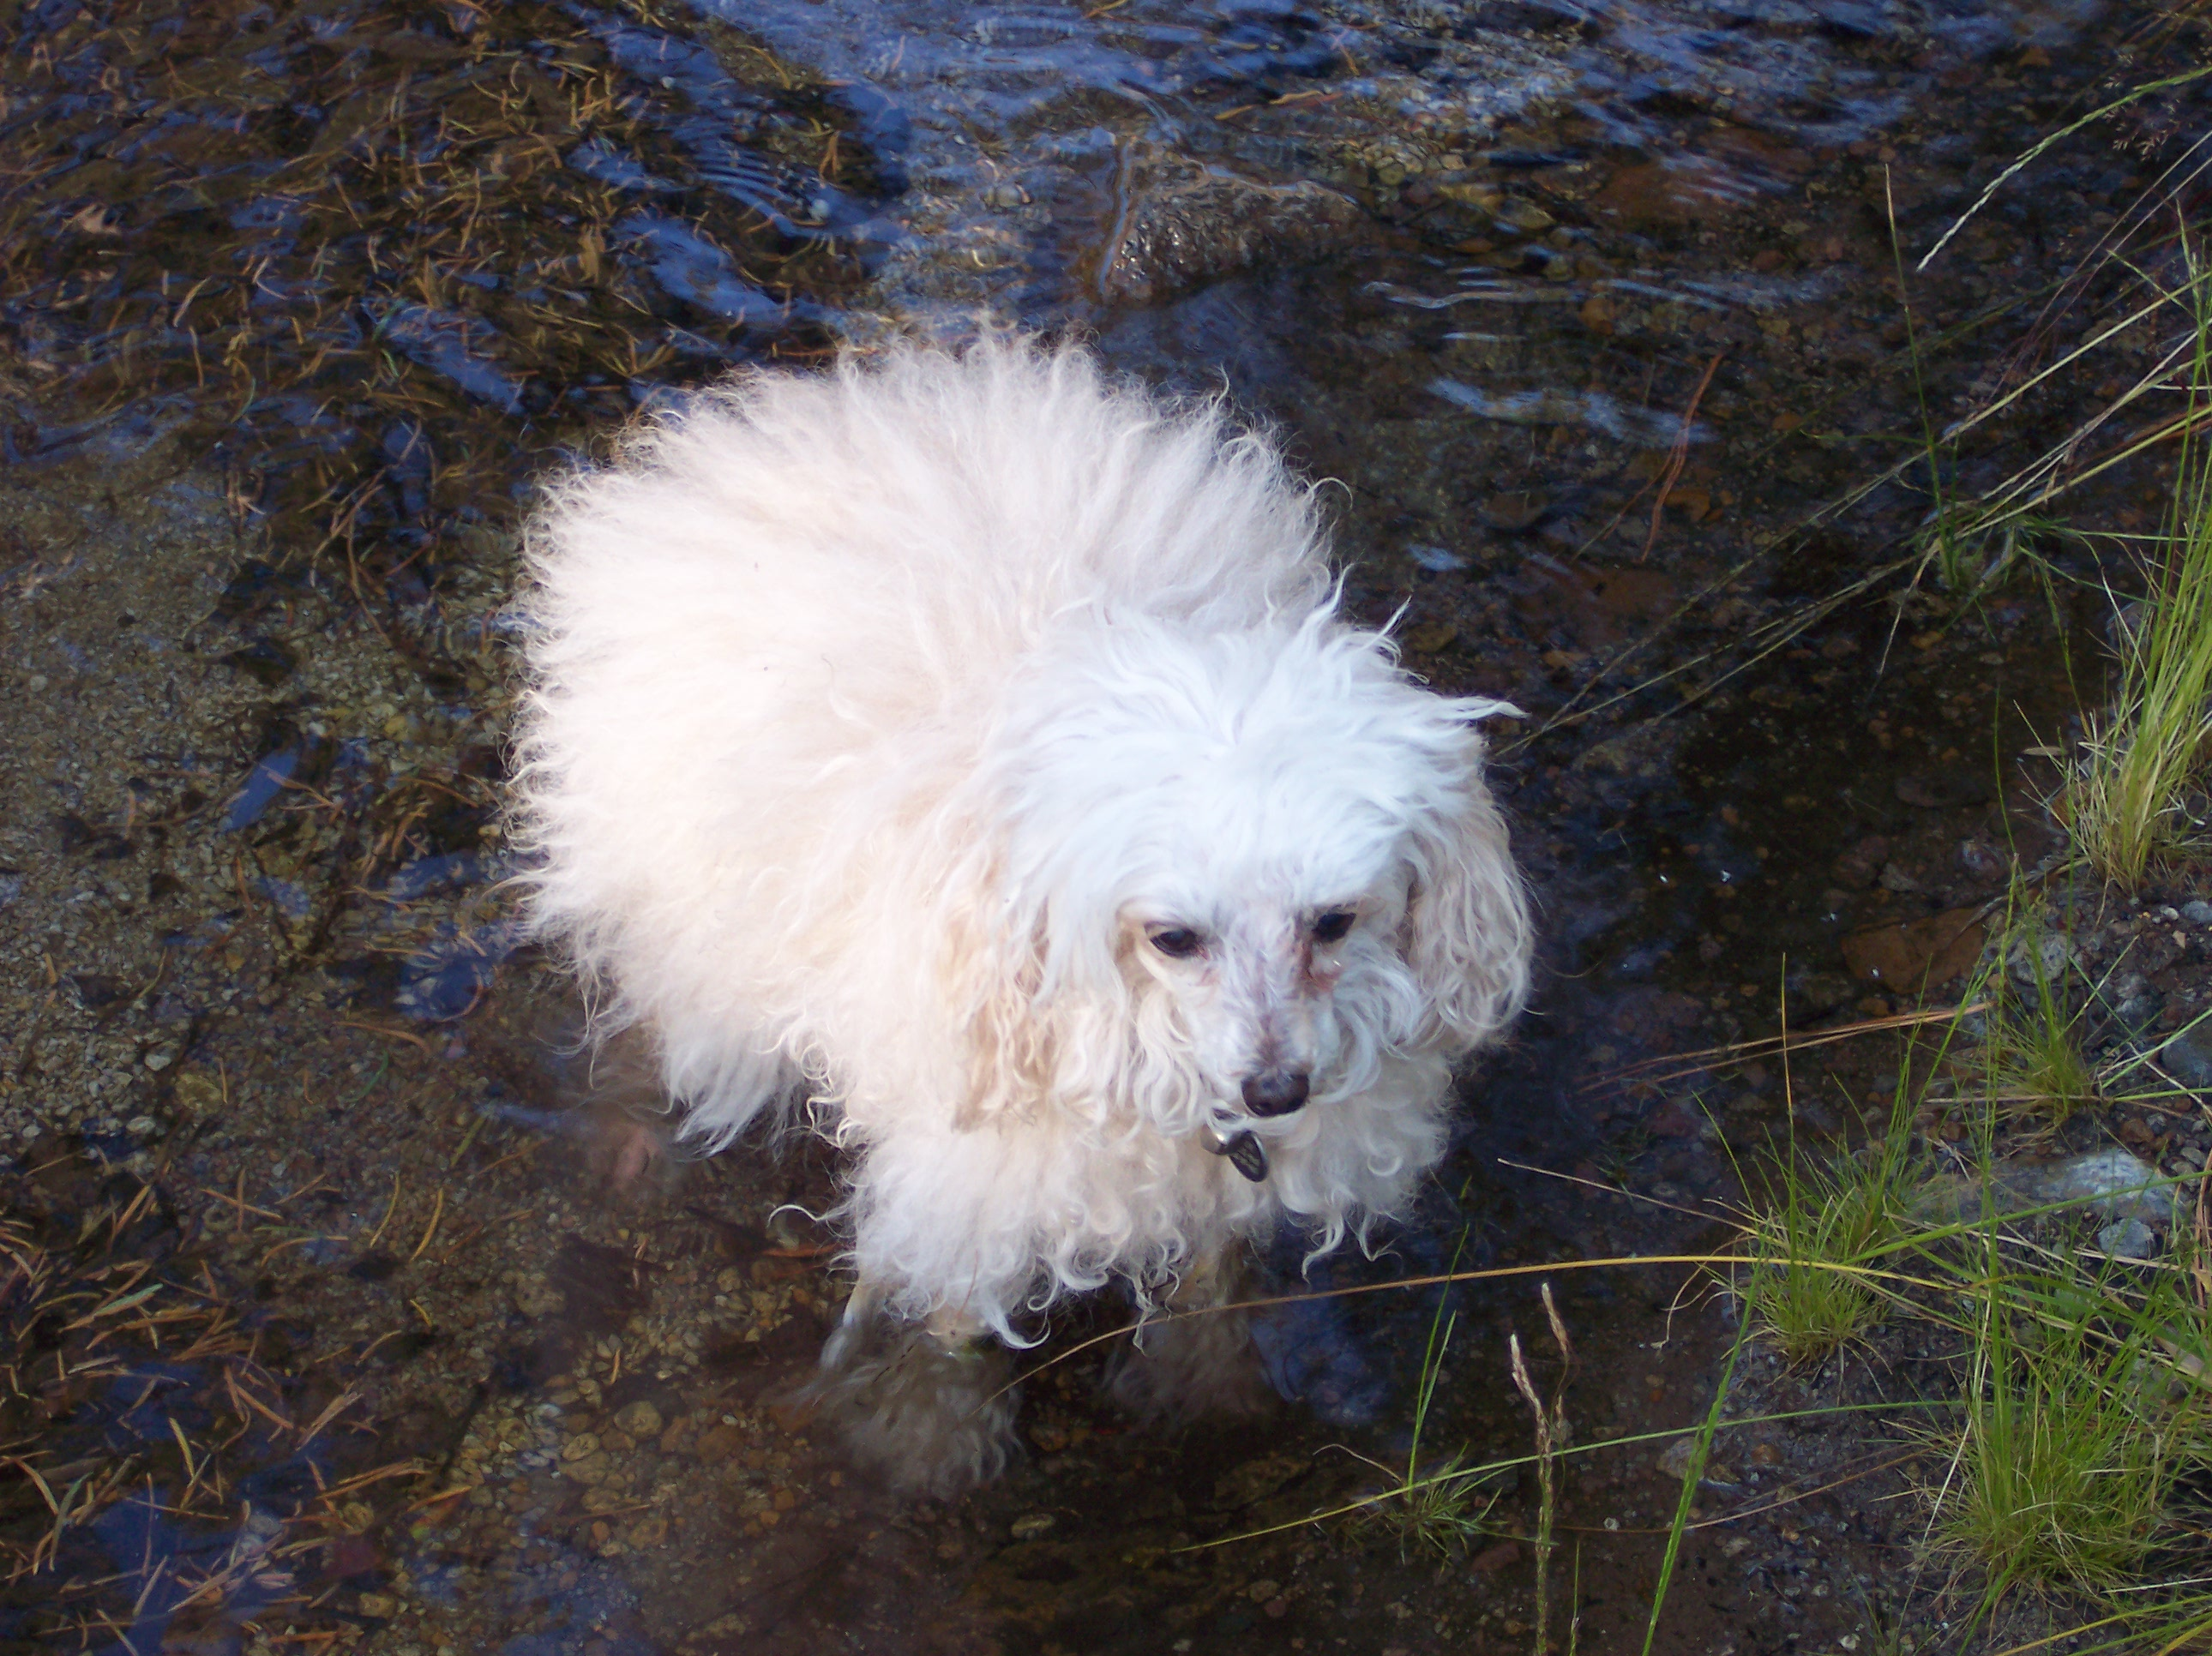 Poodle Toy Source Http Upload Wikimedia Org Wikipedia Commons 8 85 Blond Older Enjoying Water Jpg